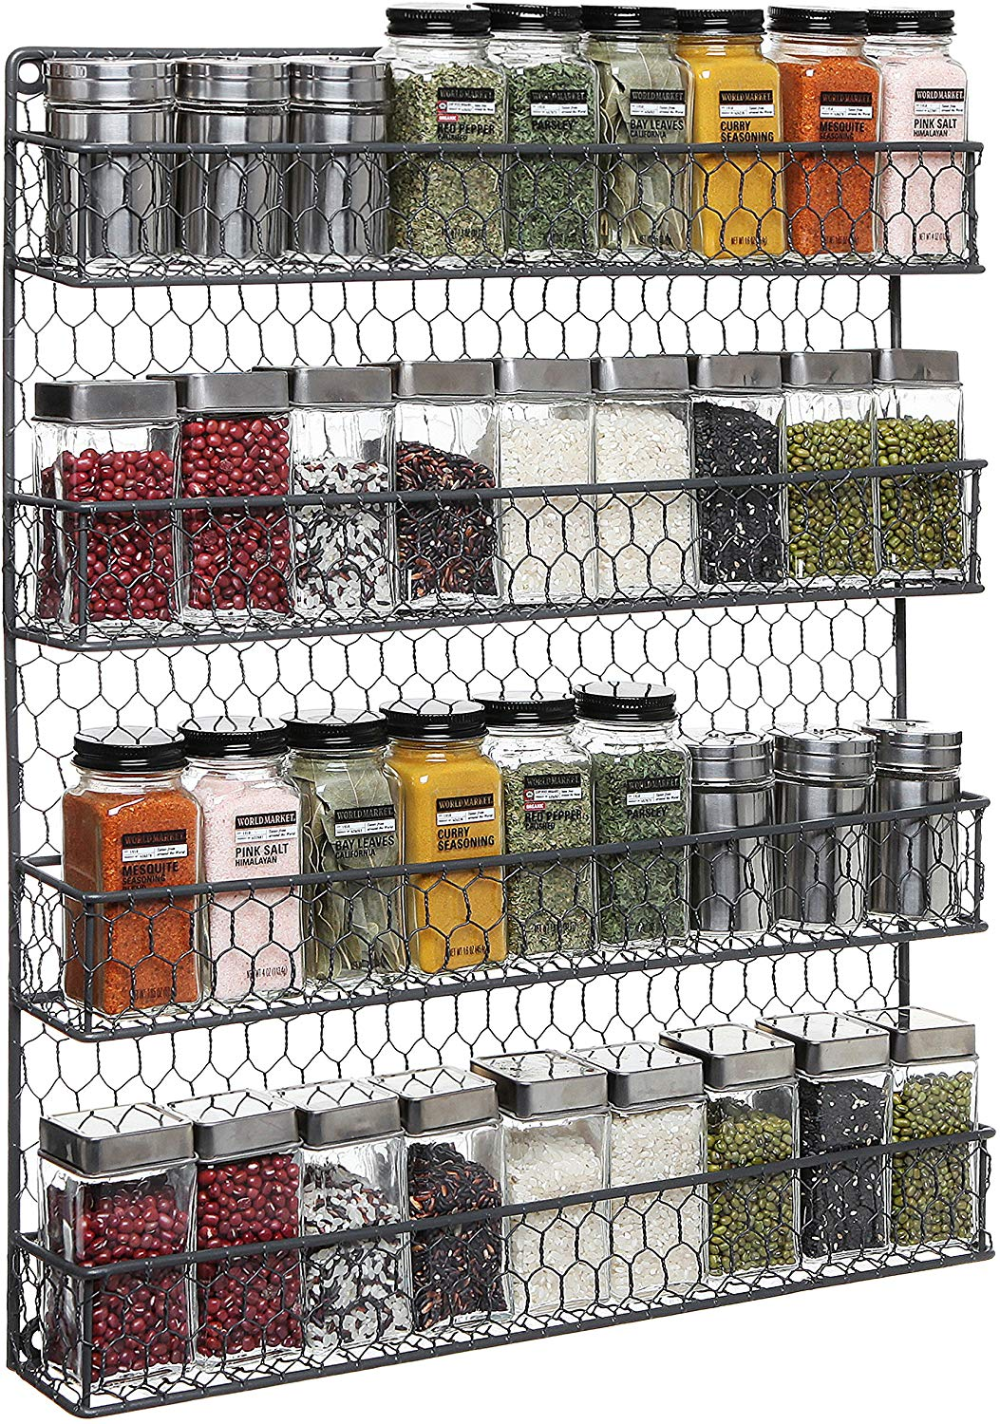 4 Tier Gray Country Rustic Chicken Wire Pantry Cabinet Or Wall Mounted Spice Rack Storage Organ With Images Wall Mounted Spice Rack Spice Rack Storage Diy Kitchen Storage